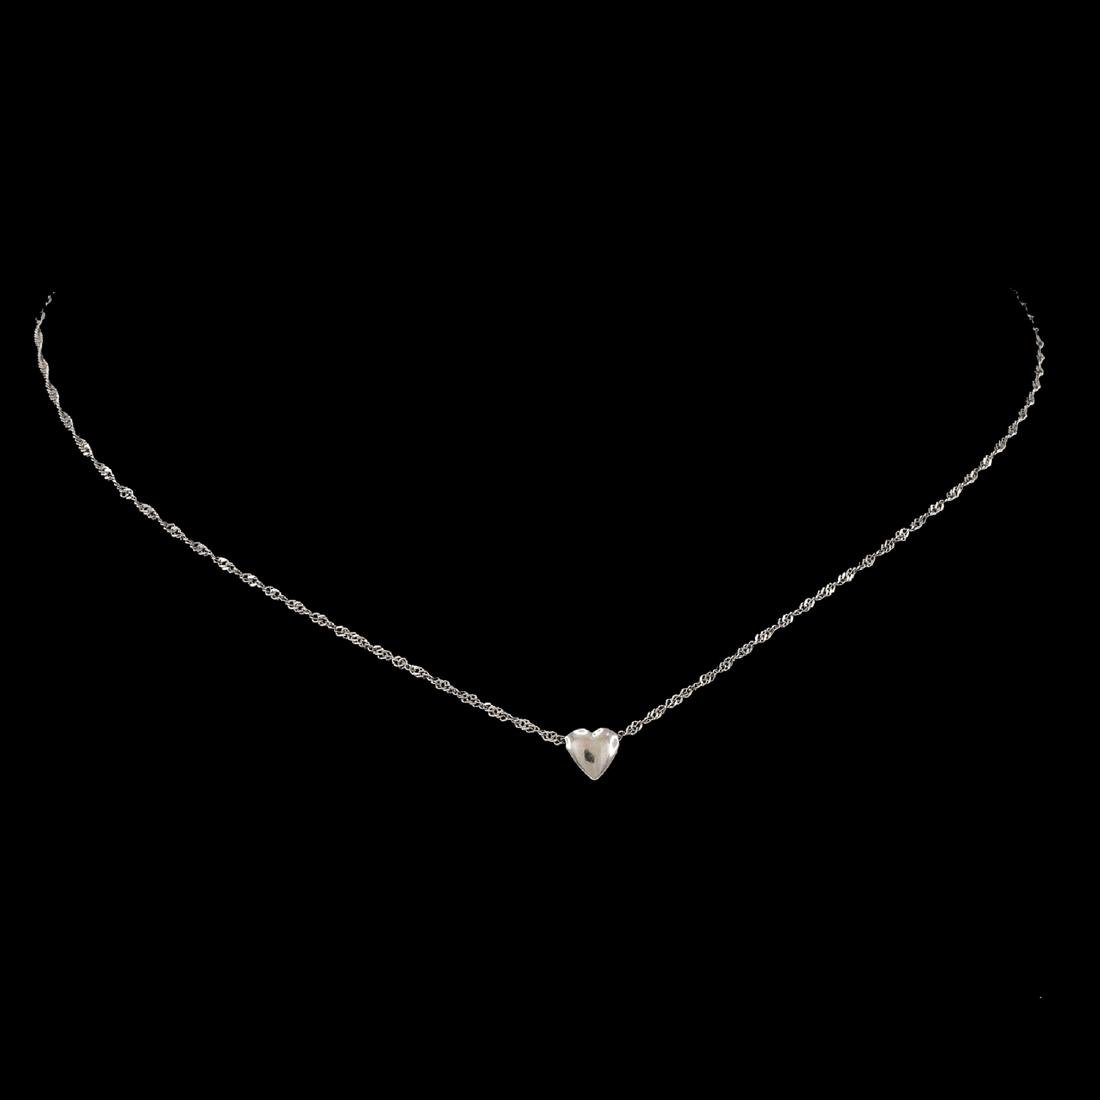 *Fine Jewelry 14KT White Gold Singapore W Puffed Heart